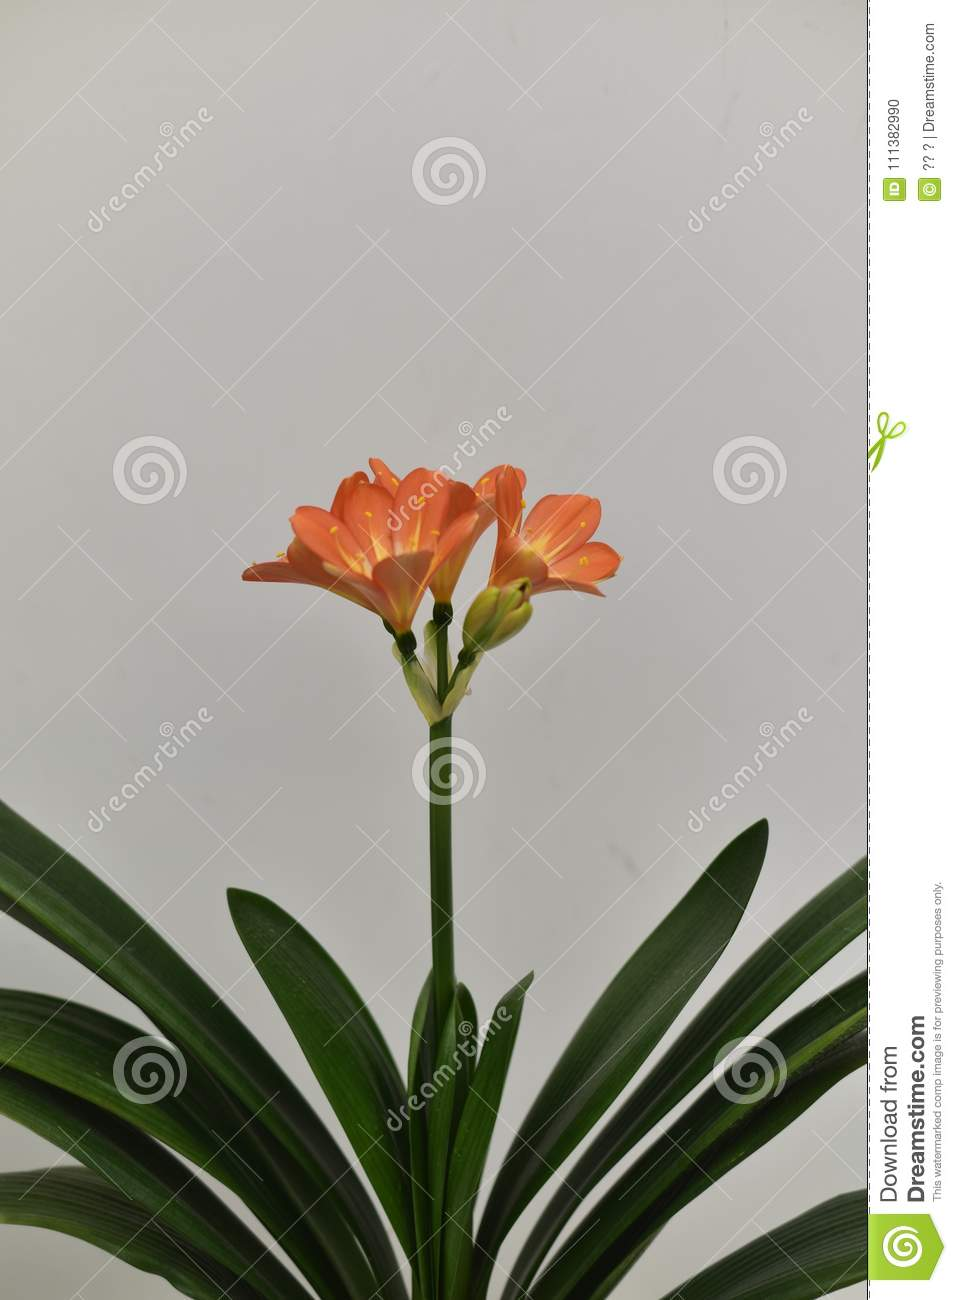 Rare clivia open in winter stock photo image of namednnnoble for the uezhu fumiyajunxiu of clivia red spider lily with a gentleman charm flowers such as orchids named noble of the meaning of clivia flower izmirmasajfo